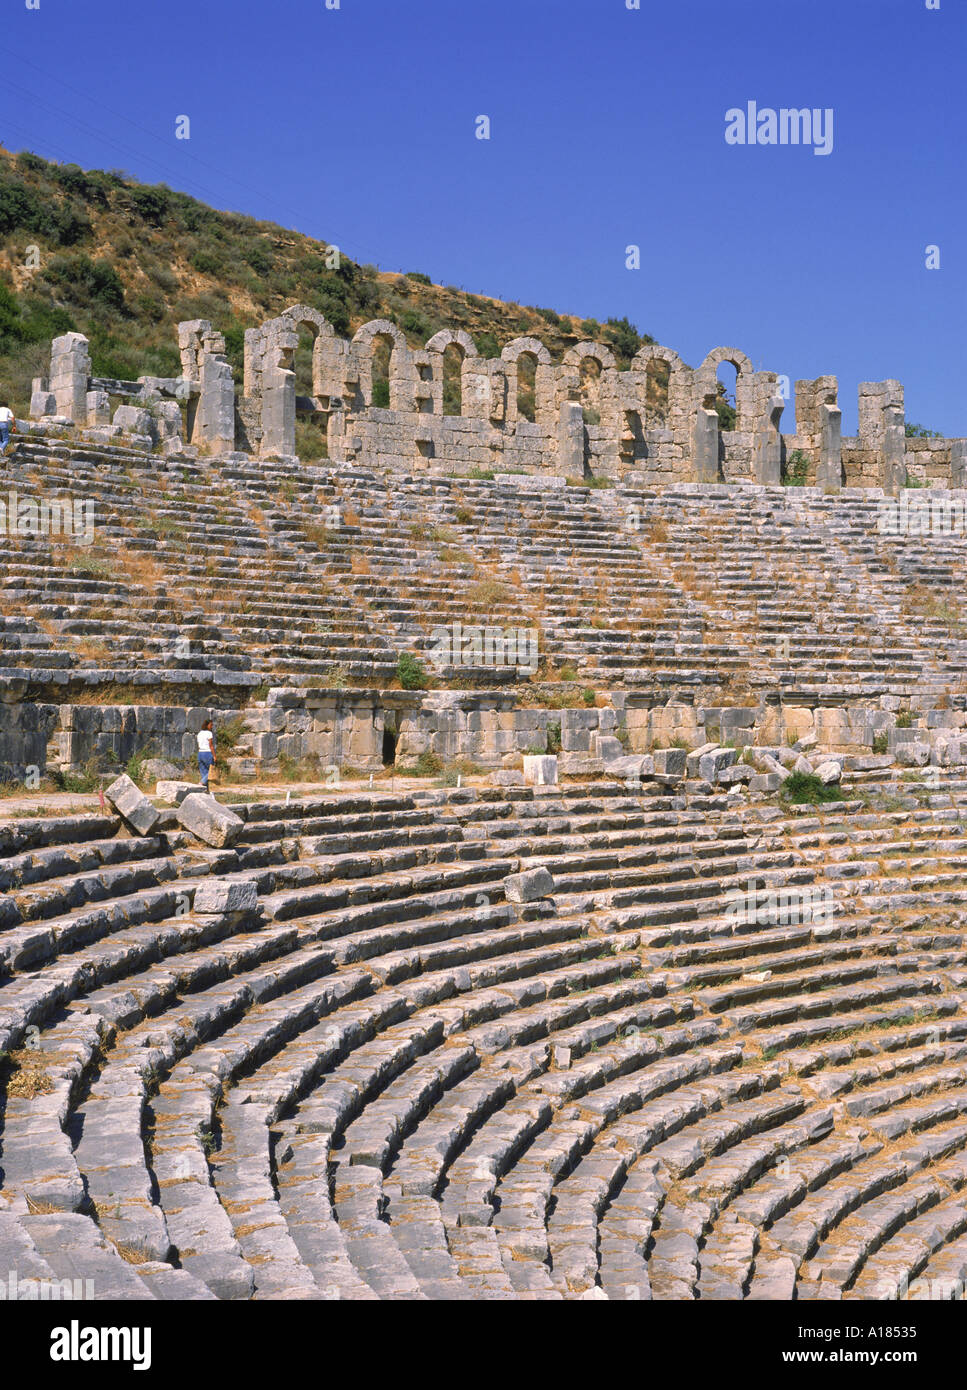 The theatre at Aspendos one of the best preserved in the Roman Empire Turkey M Short - Stock Image